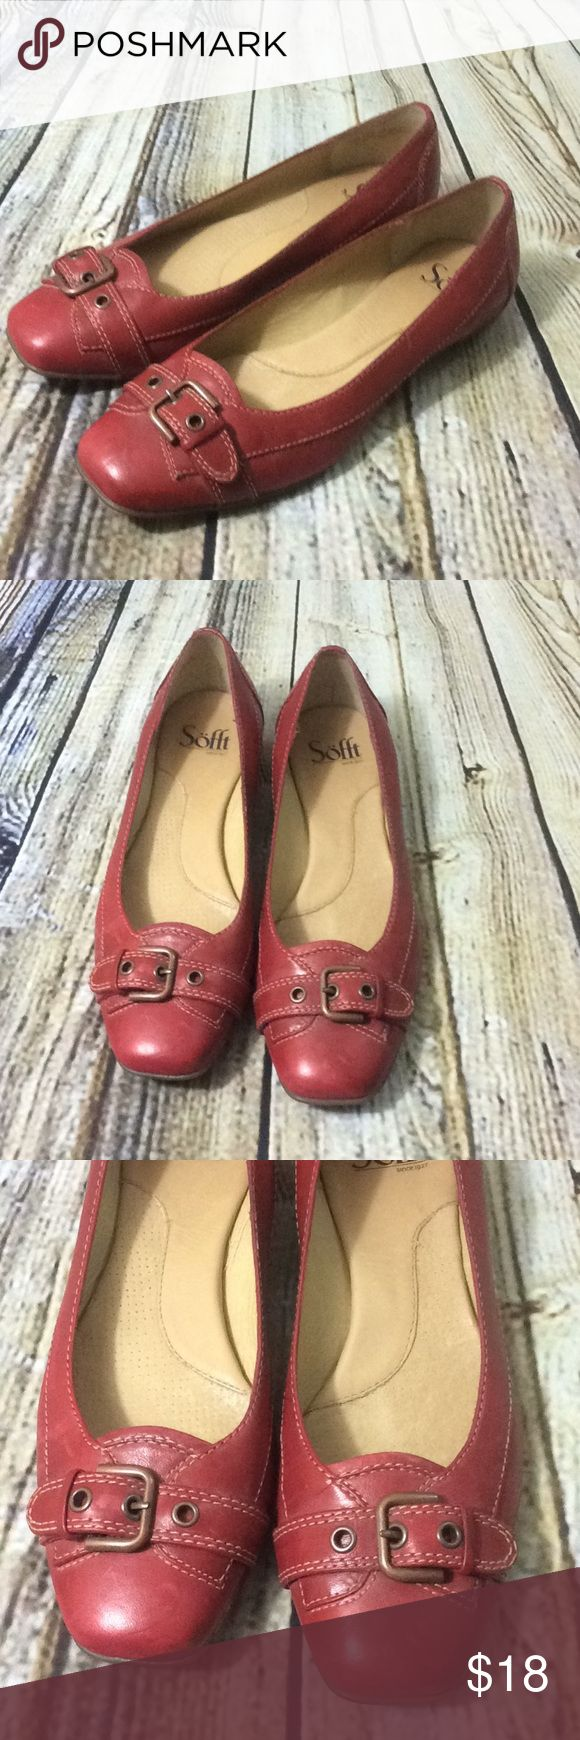 Sofft Flats Red Leather Buckle 7.5 Sofft Women's Comfort Brand flats size 7.5. A few knicks and scratches up close in various areas of shoes so not perfect up close but overall nice condition. Sofft Shoes Flats & Loafers